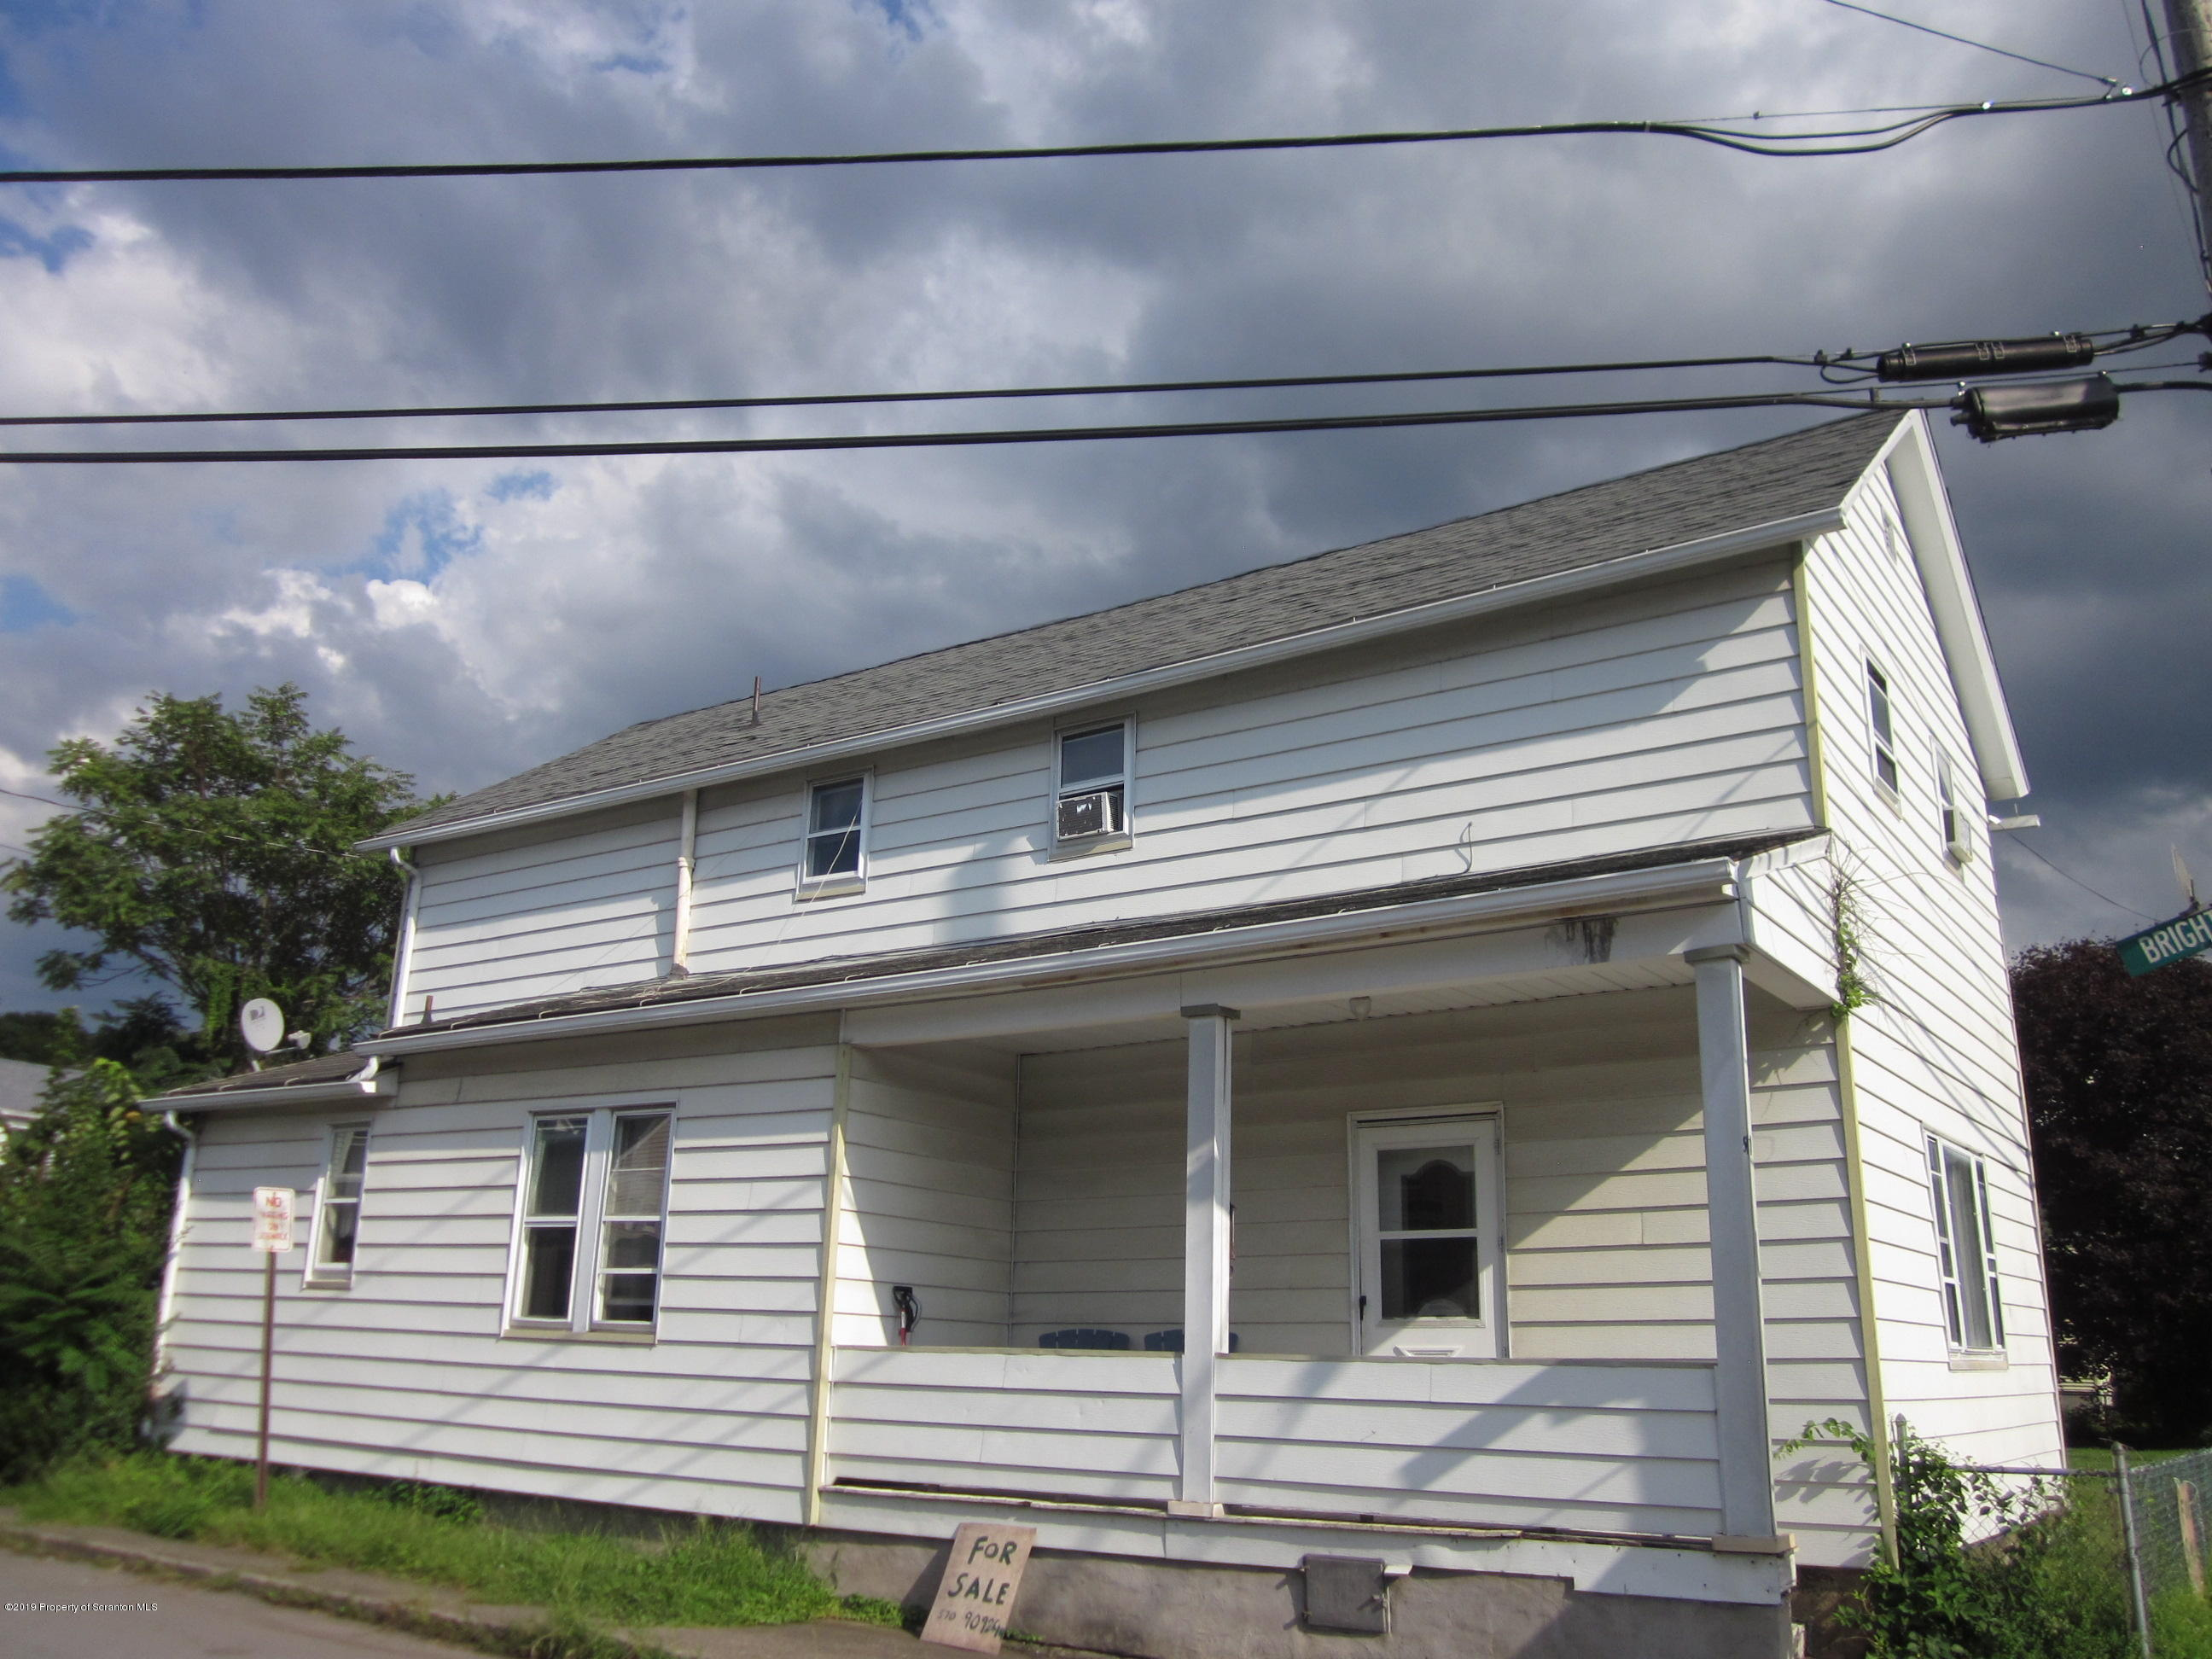 511 Grace St, Scranton, Pennsylvania 18505, 3 Bedrooms Bedrooms, 6 Rooms Rooms,1 BathroomBathrooms,Single Family,For Sale,Grace,19-4337